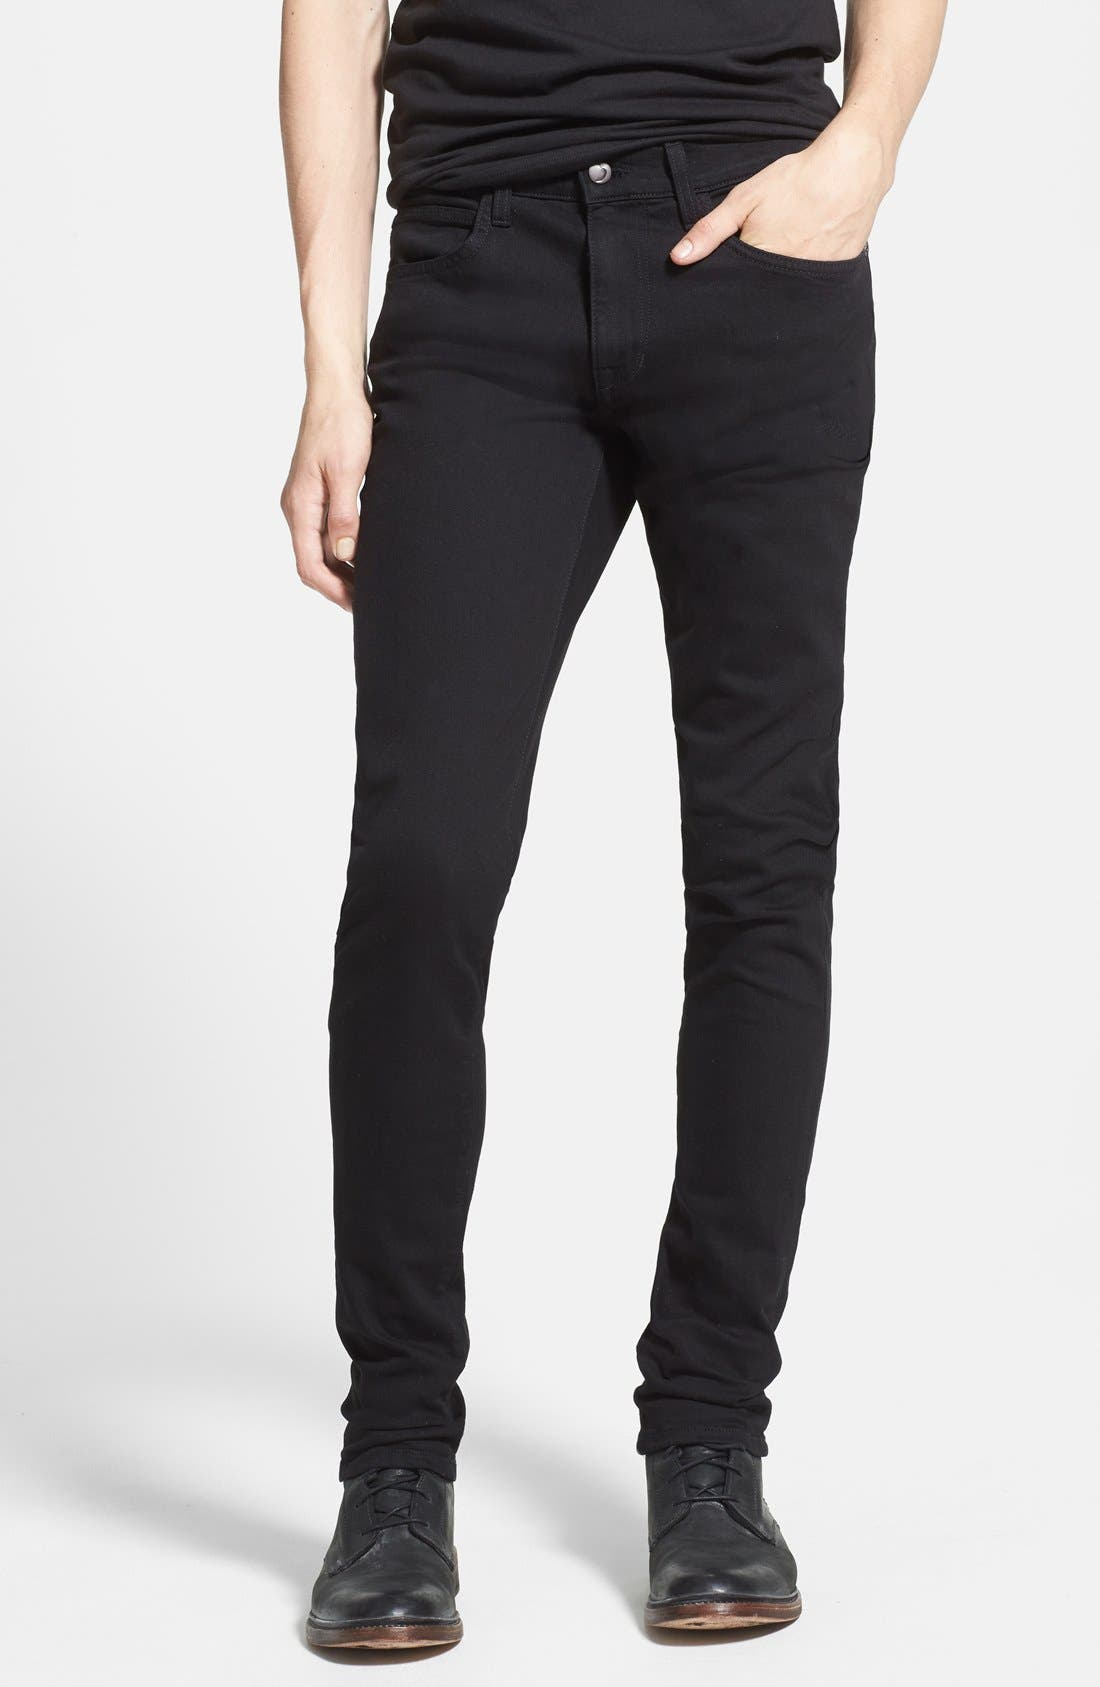 Alternate Image 1 Selected - Joe's 'Slim' Skinny Fit Jeans (Jet Black)